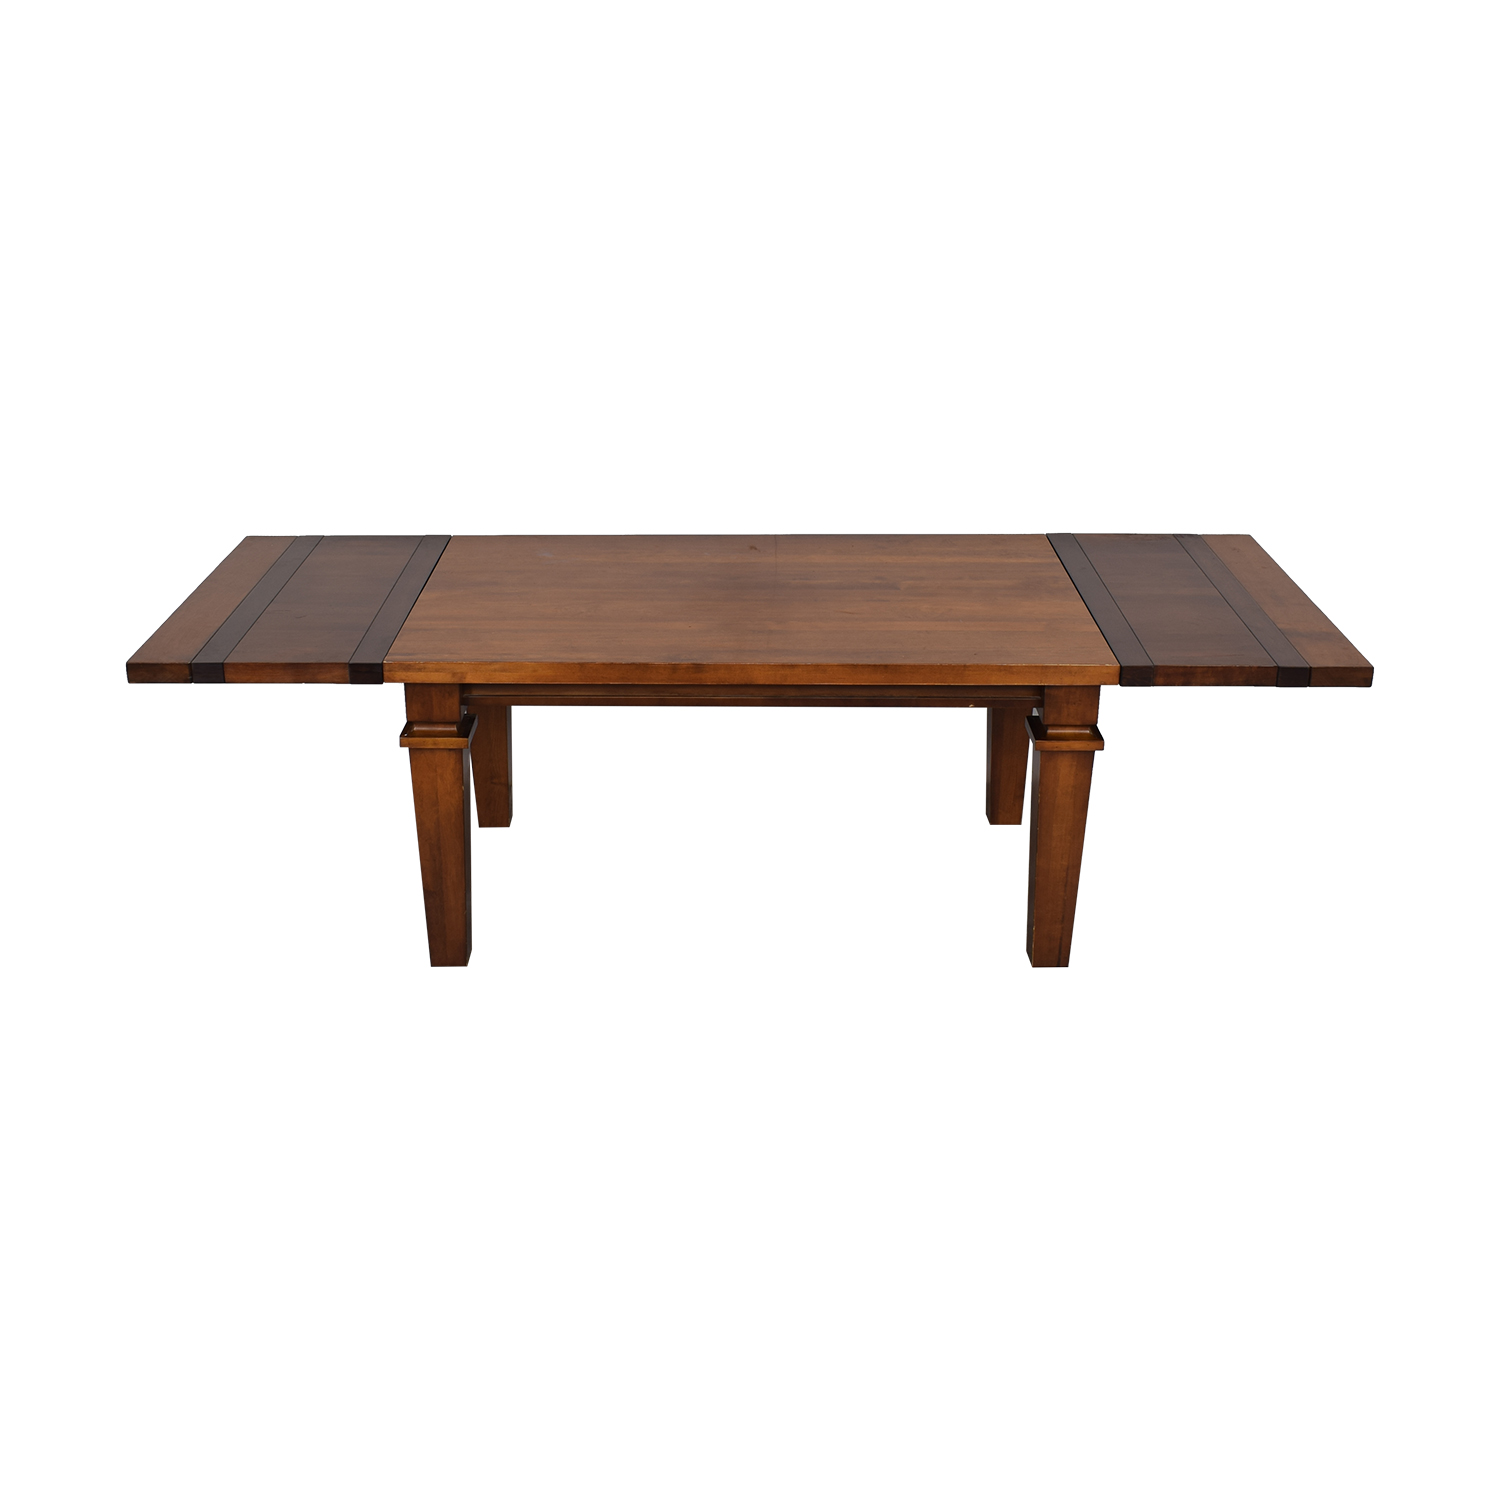 Andes International Extension Dining Table Andes International